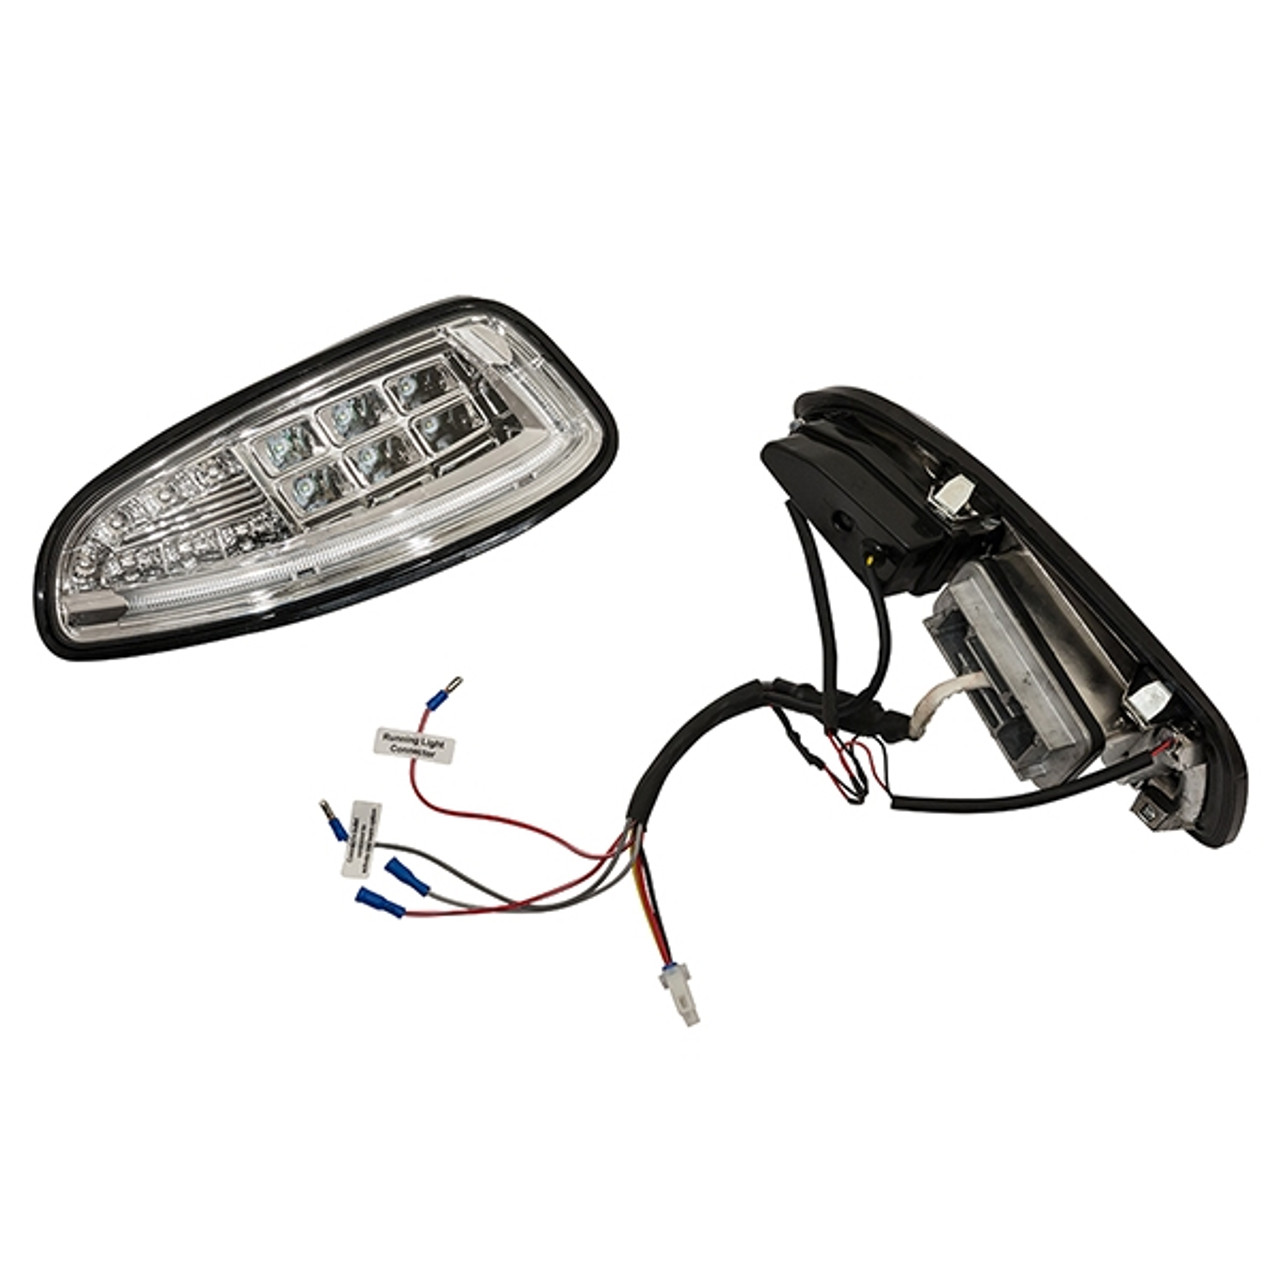 Madjax LED Ultimate Light Kit Plus - Fits EZGO RXV (2016-Up)